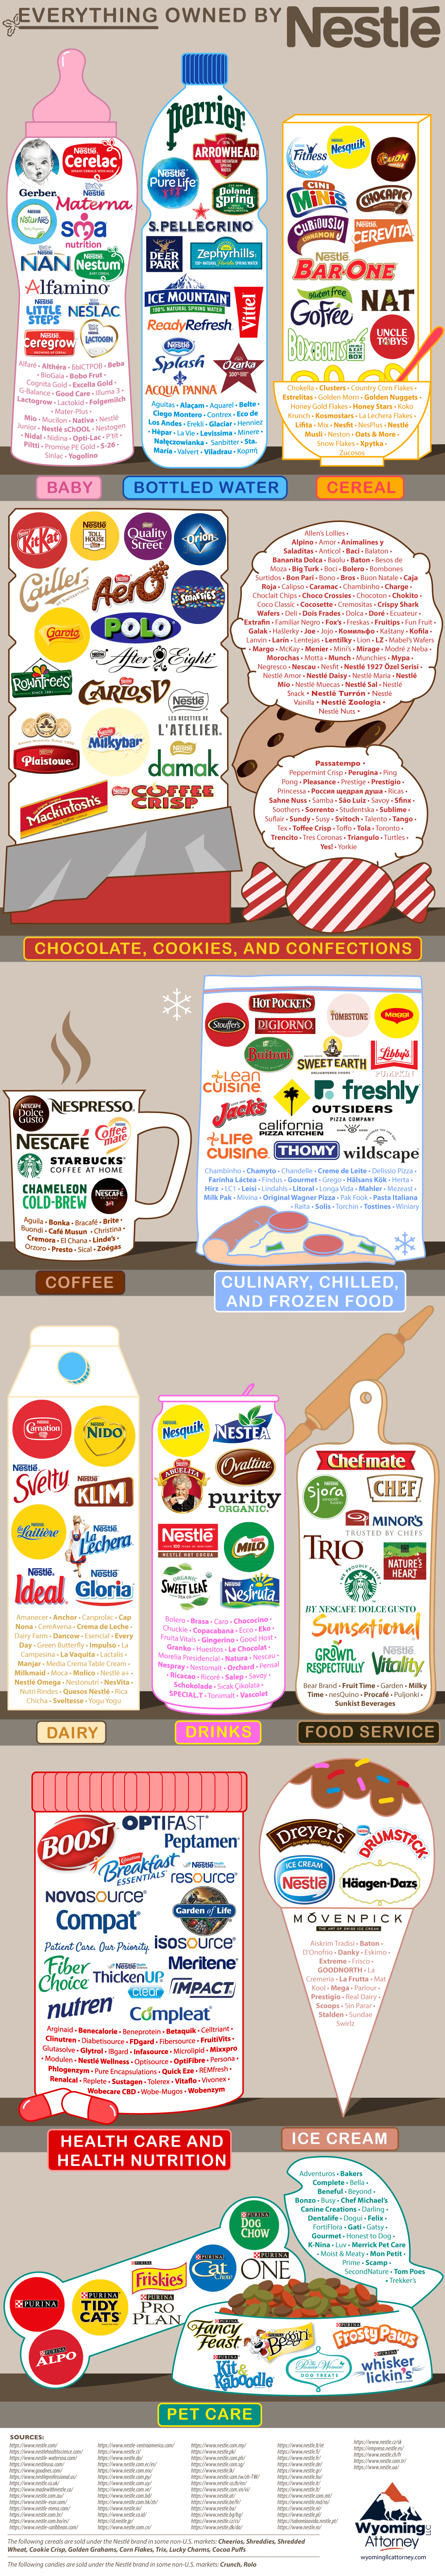 Every Brand That Nestle Owns